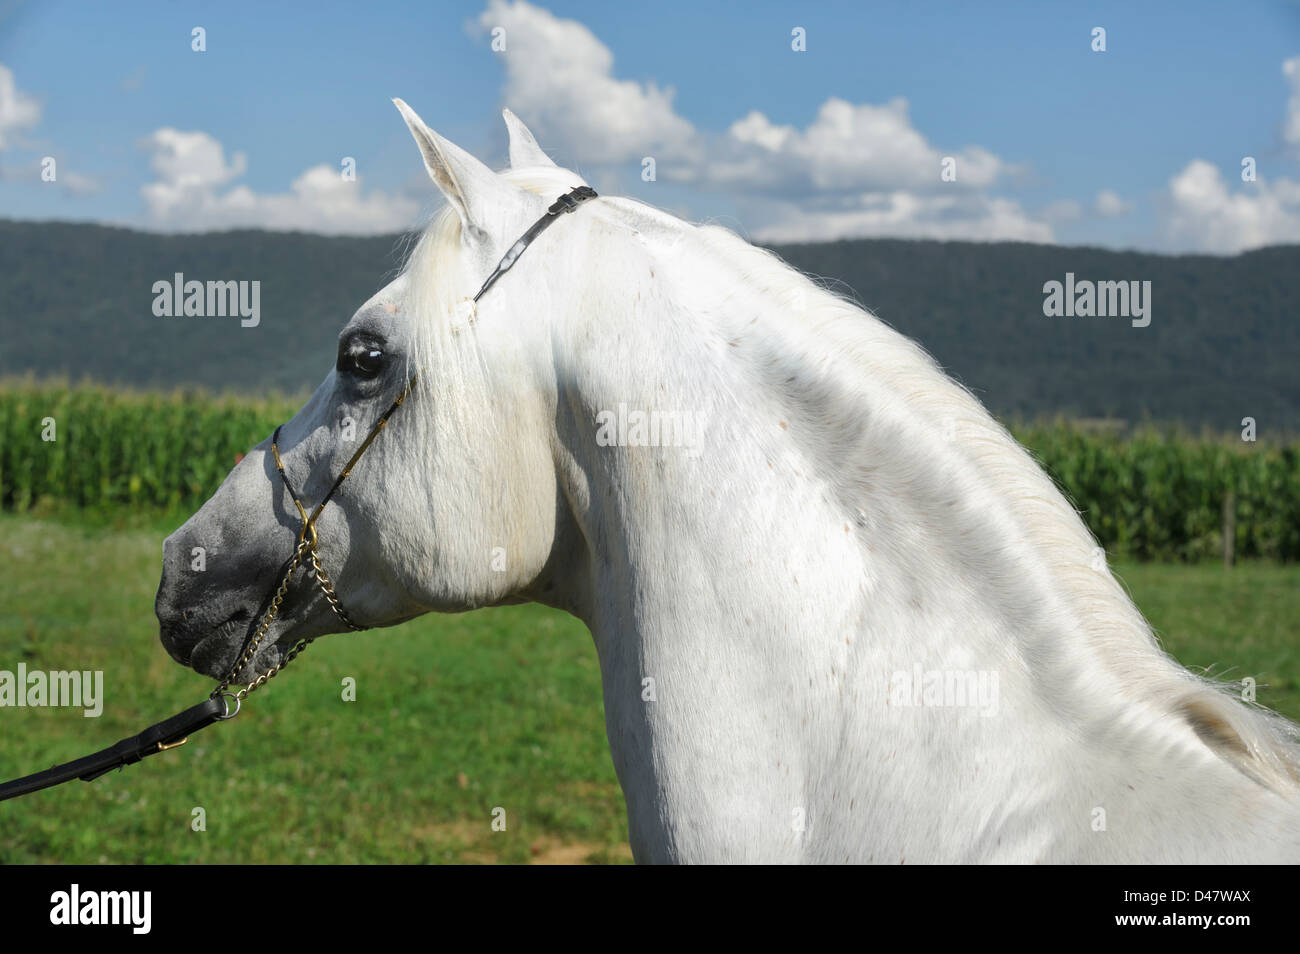 White horse head shot side view showing strong muscular neck arch, Arabian stallion against mountain and field country - Stock Image